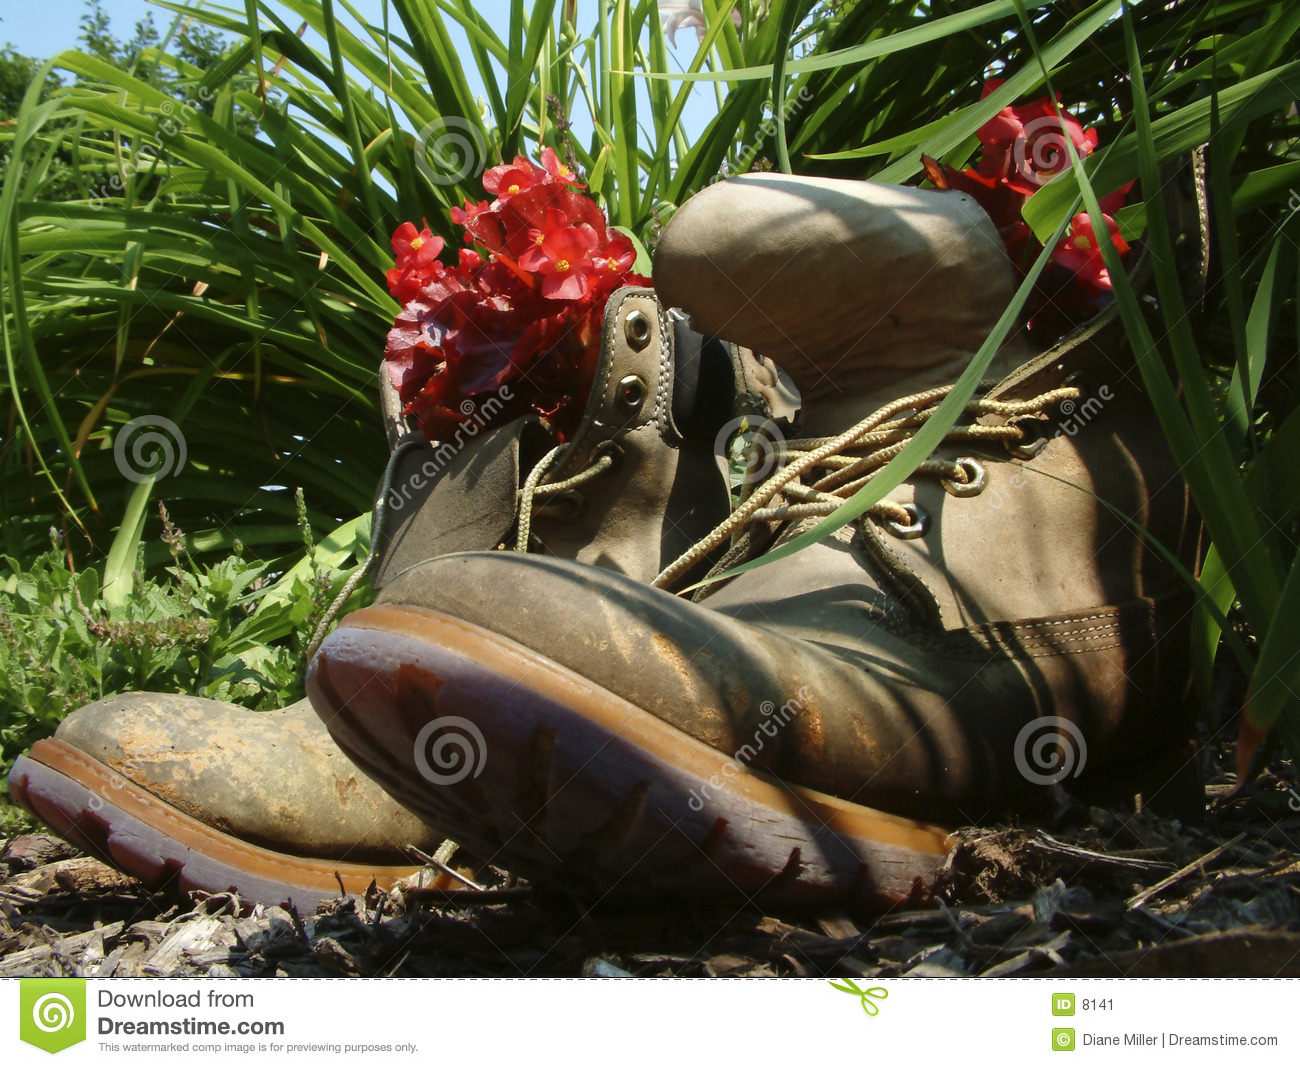 Retired boots